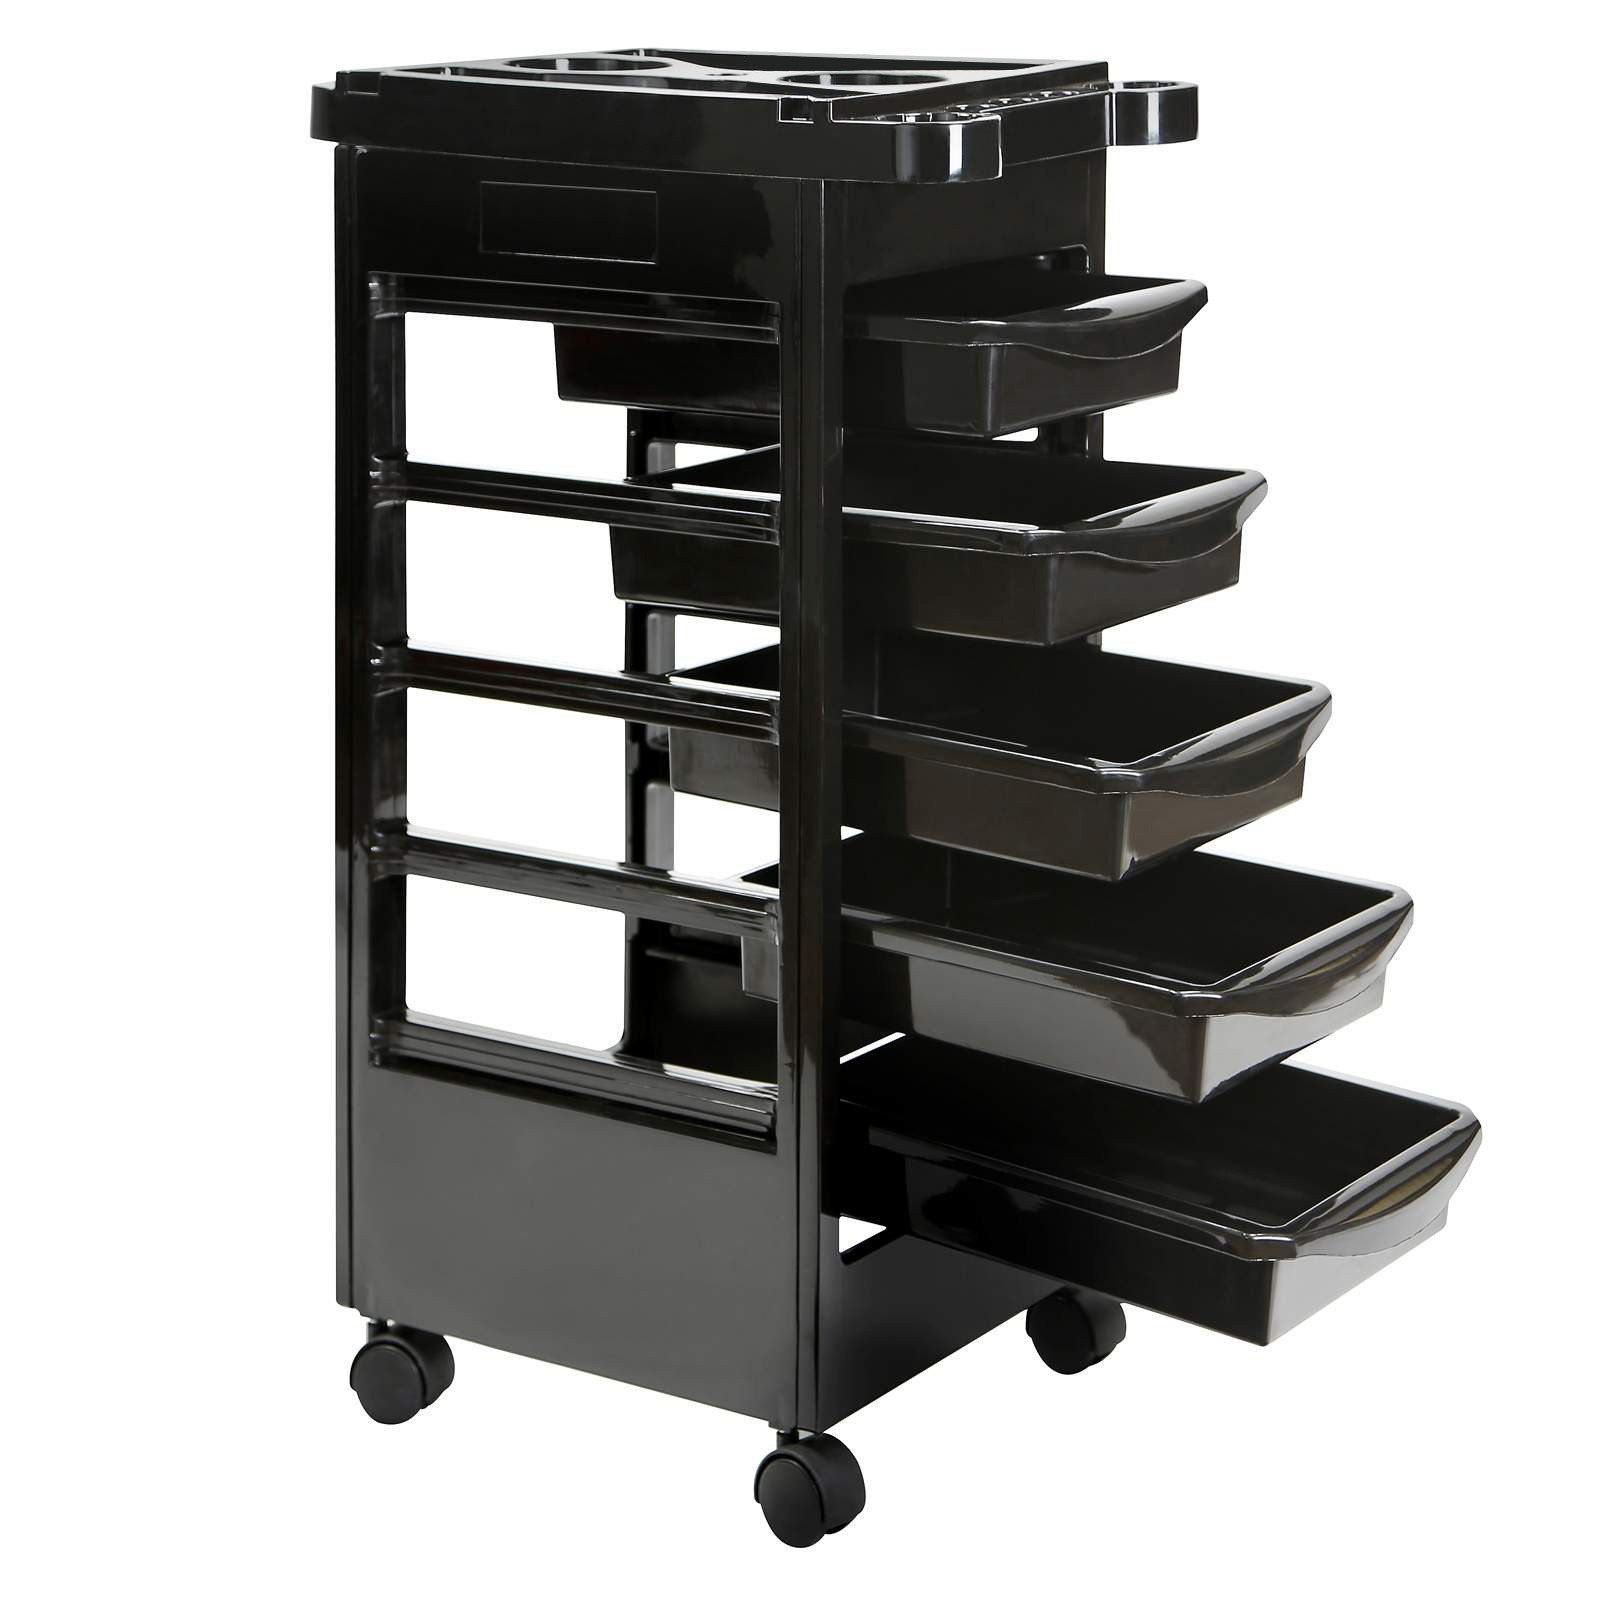 Beauty salon trolley mobile equipment cart with drawers